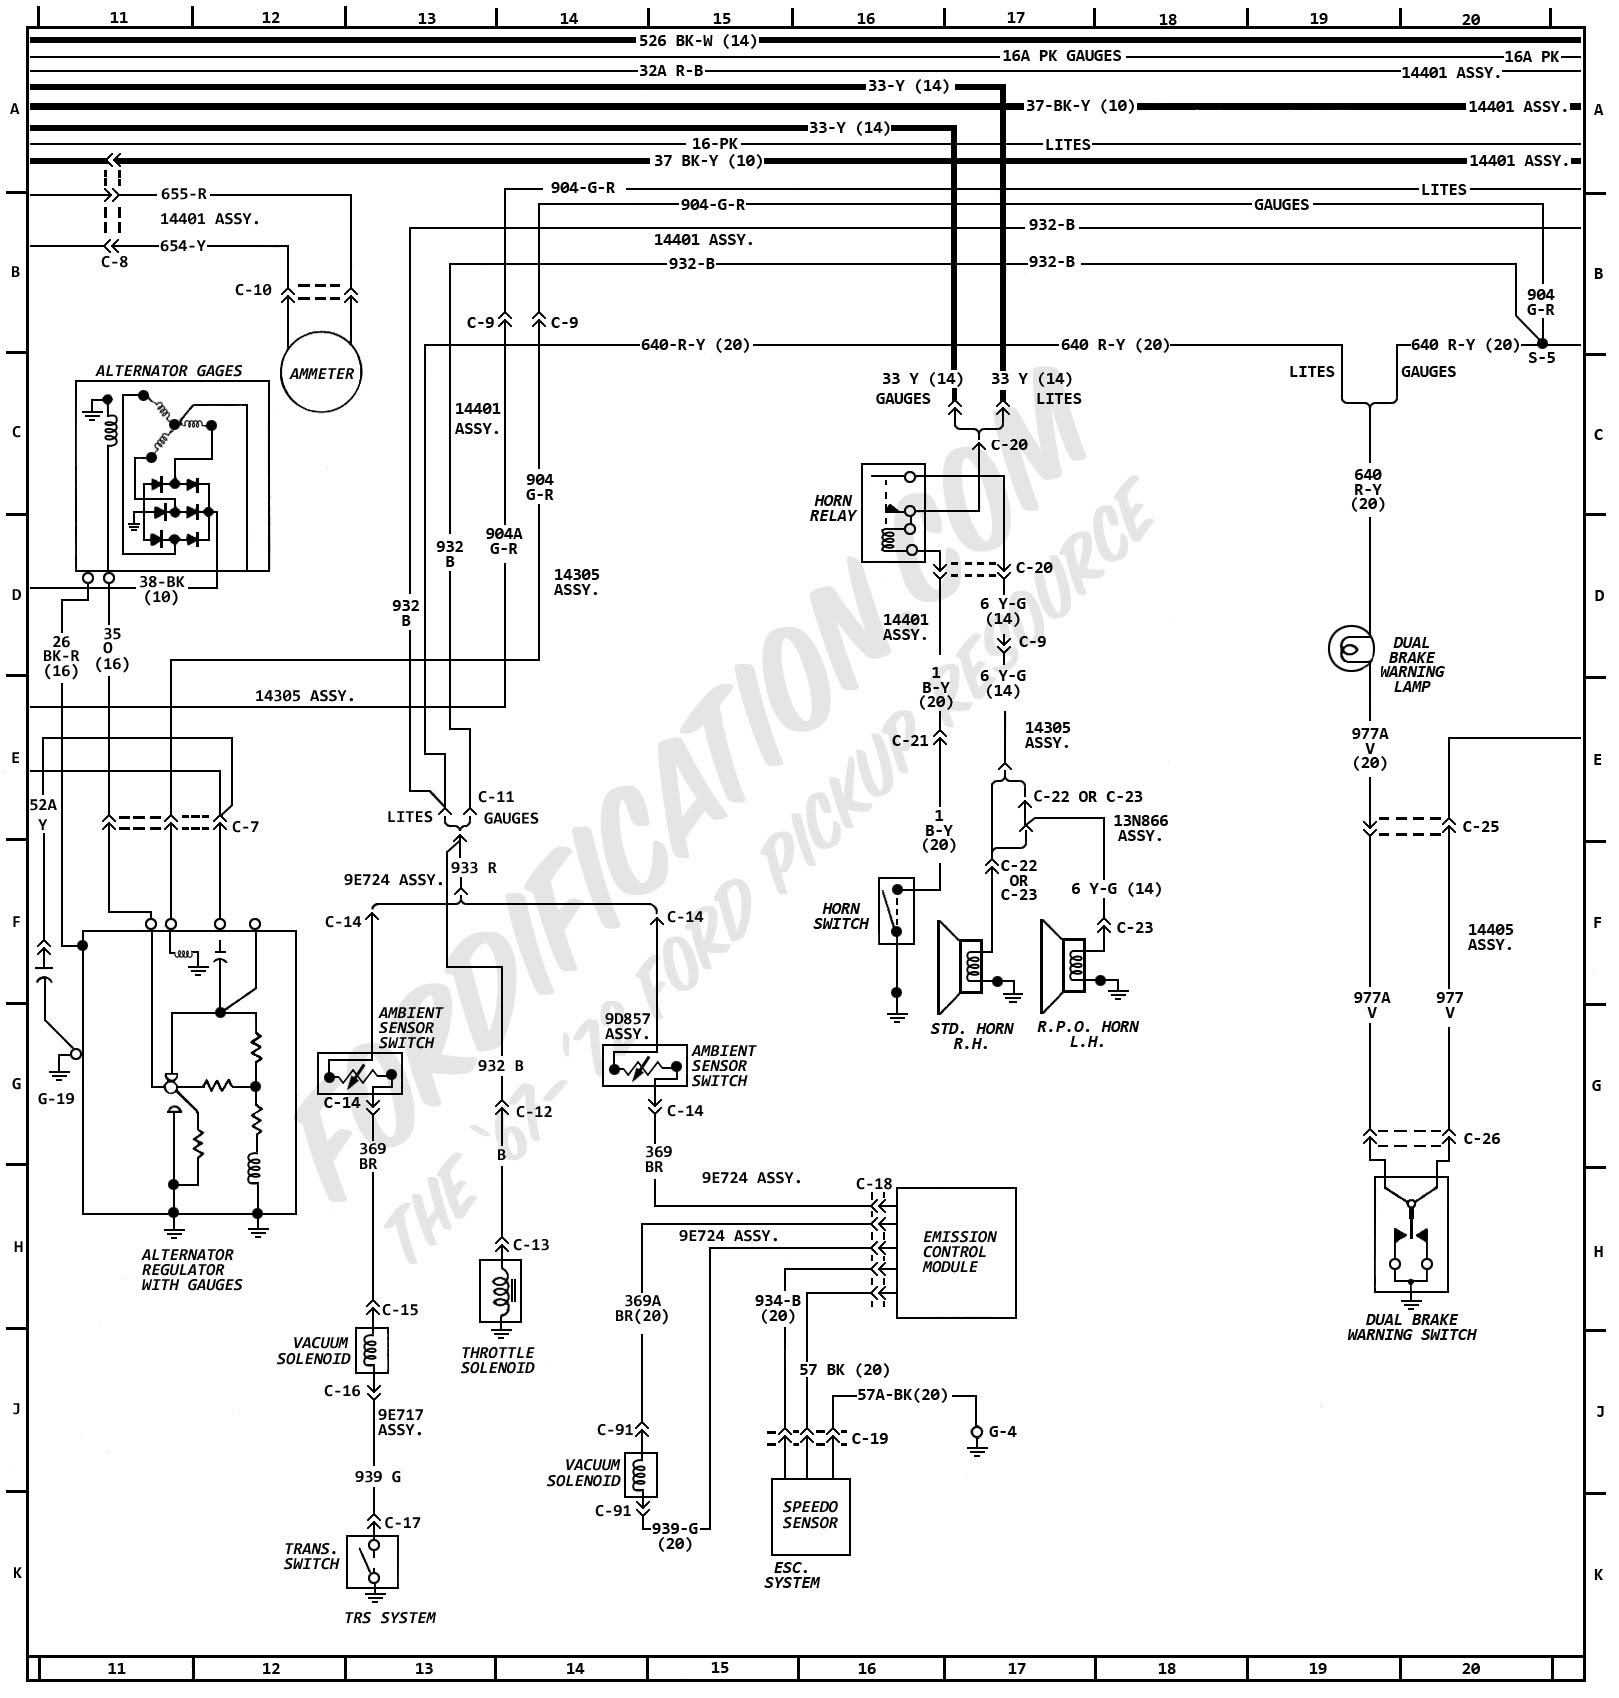 1972 Ford Truck Wiring Diagrams - FORDification.com